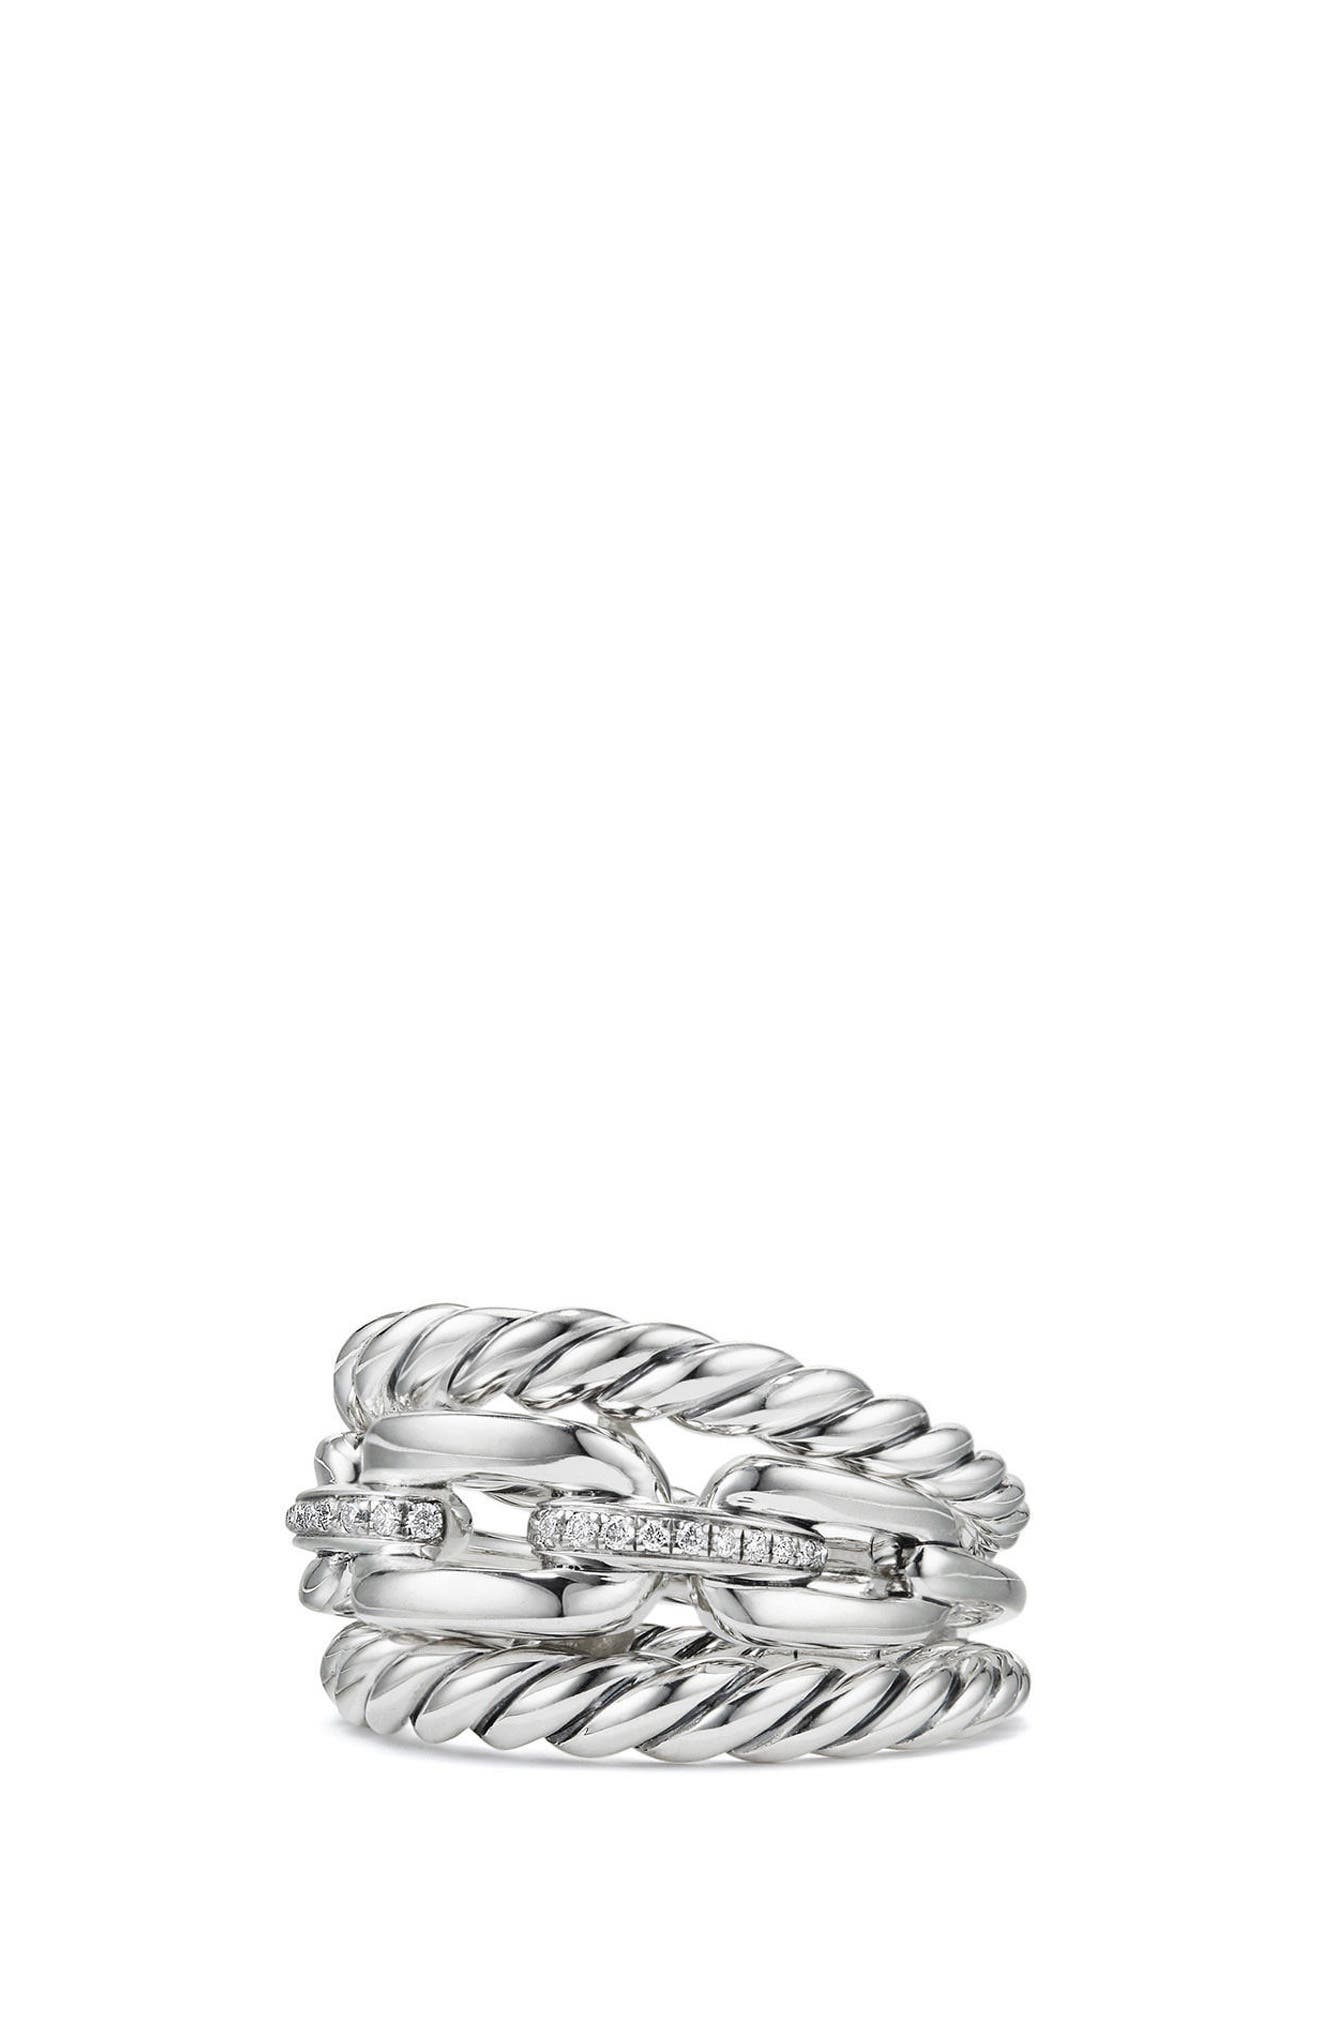 Wellesley Three-Row Ring with Diamonds,                         Main,                         color, Silver